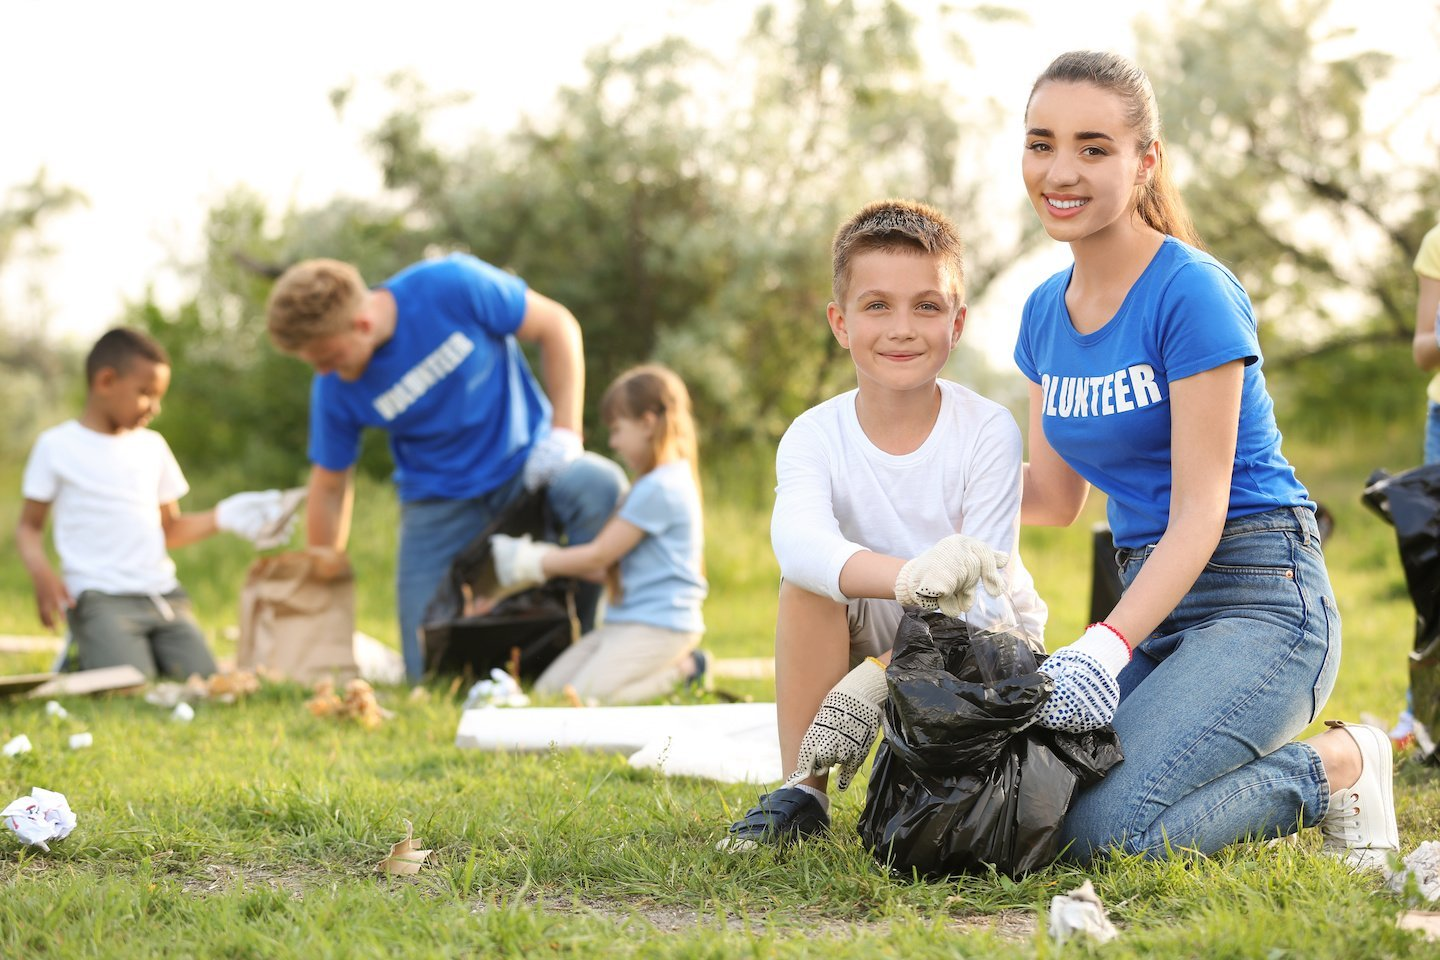 4 Ways to Give Back to Your Community This Summer